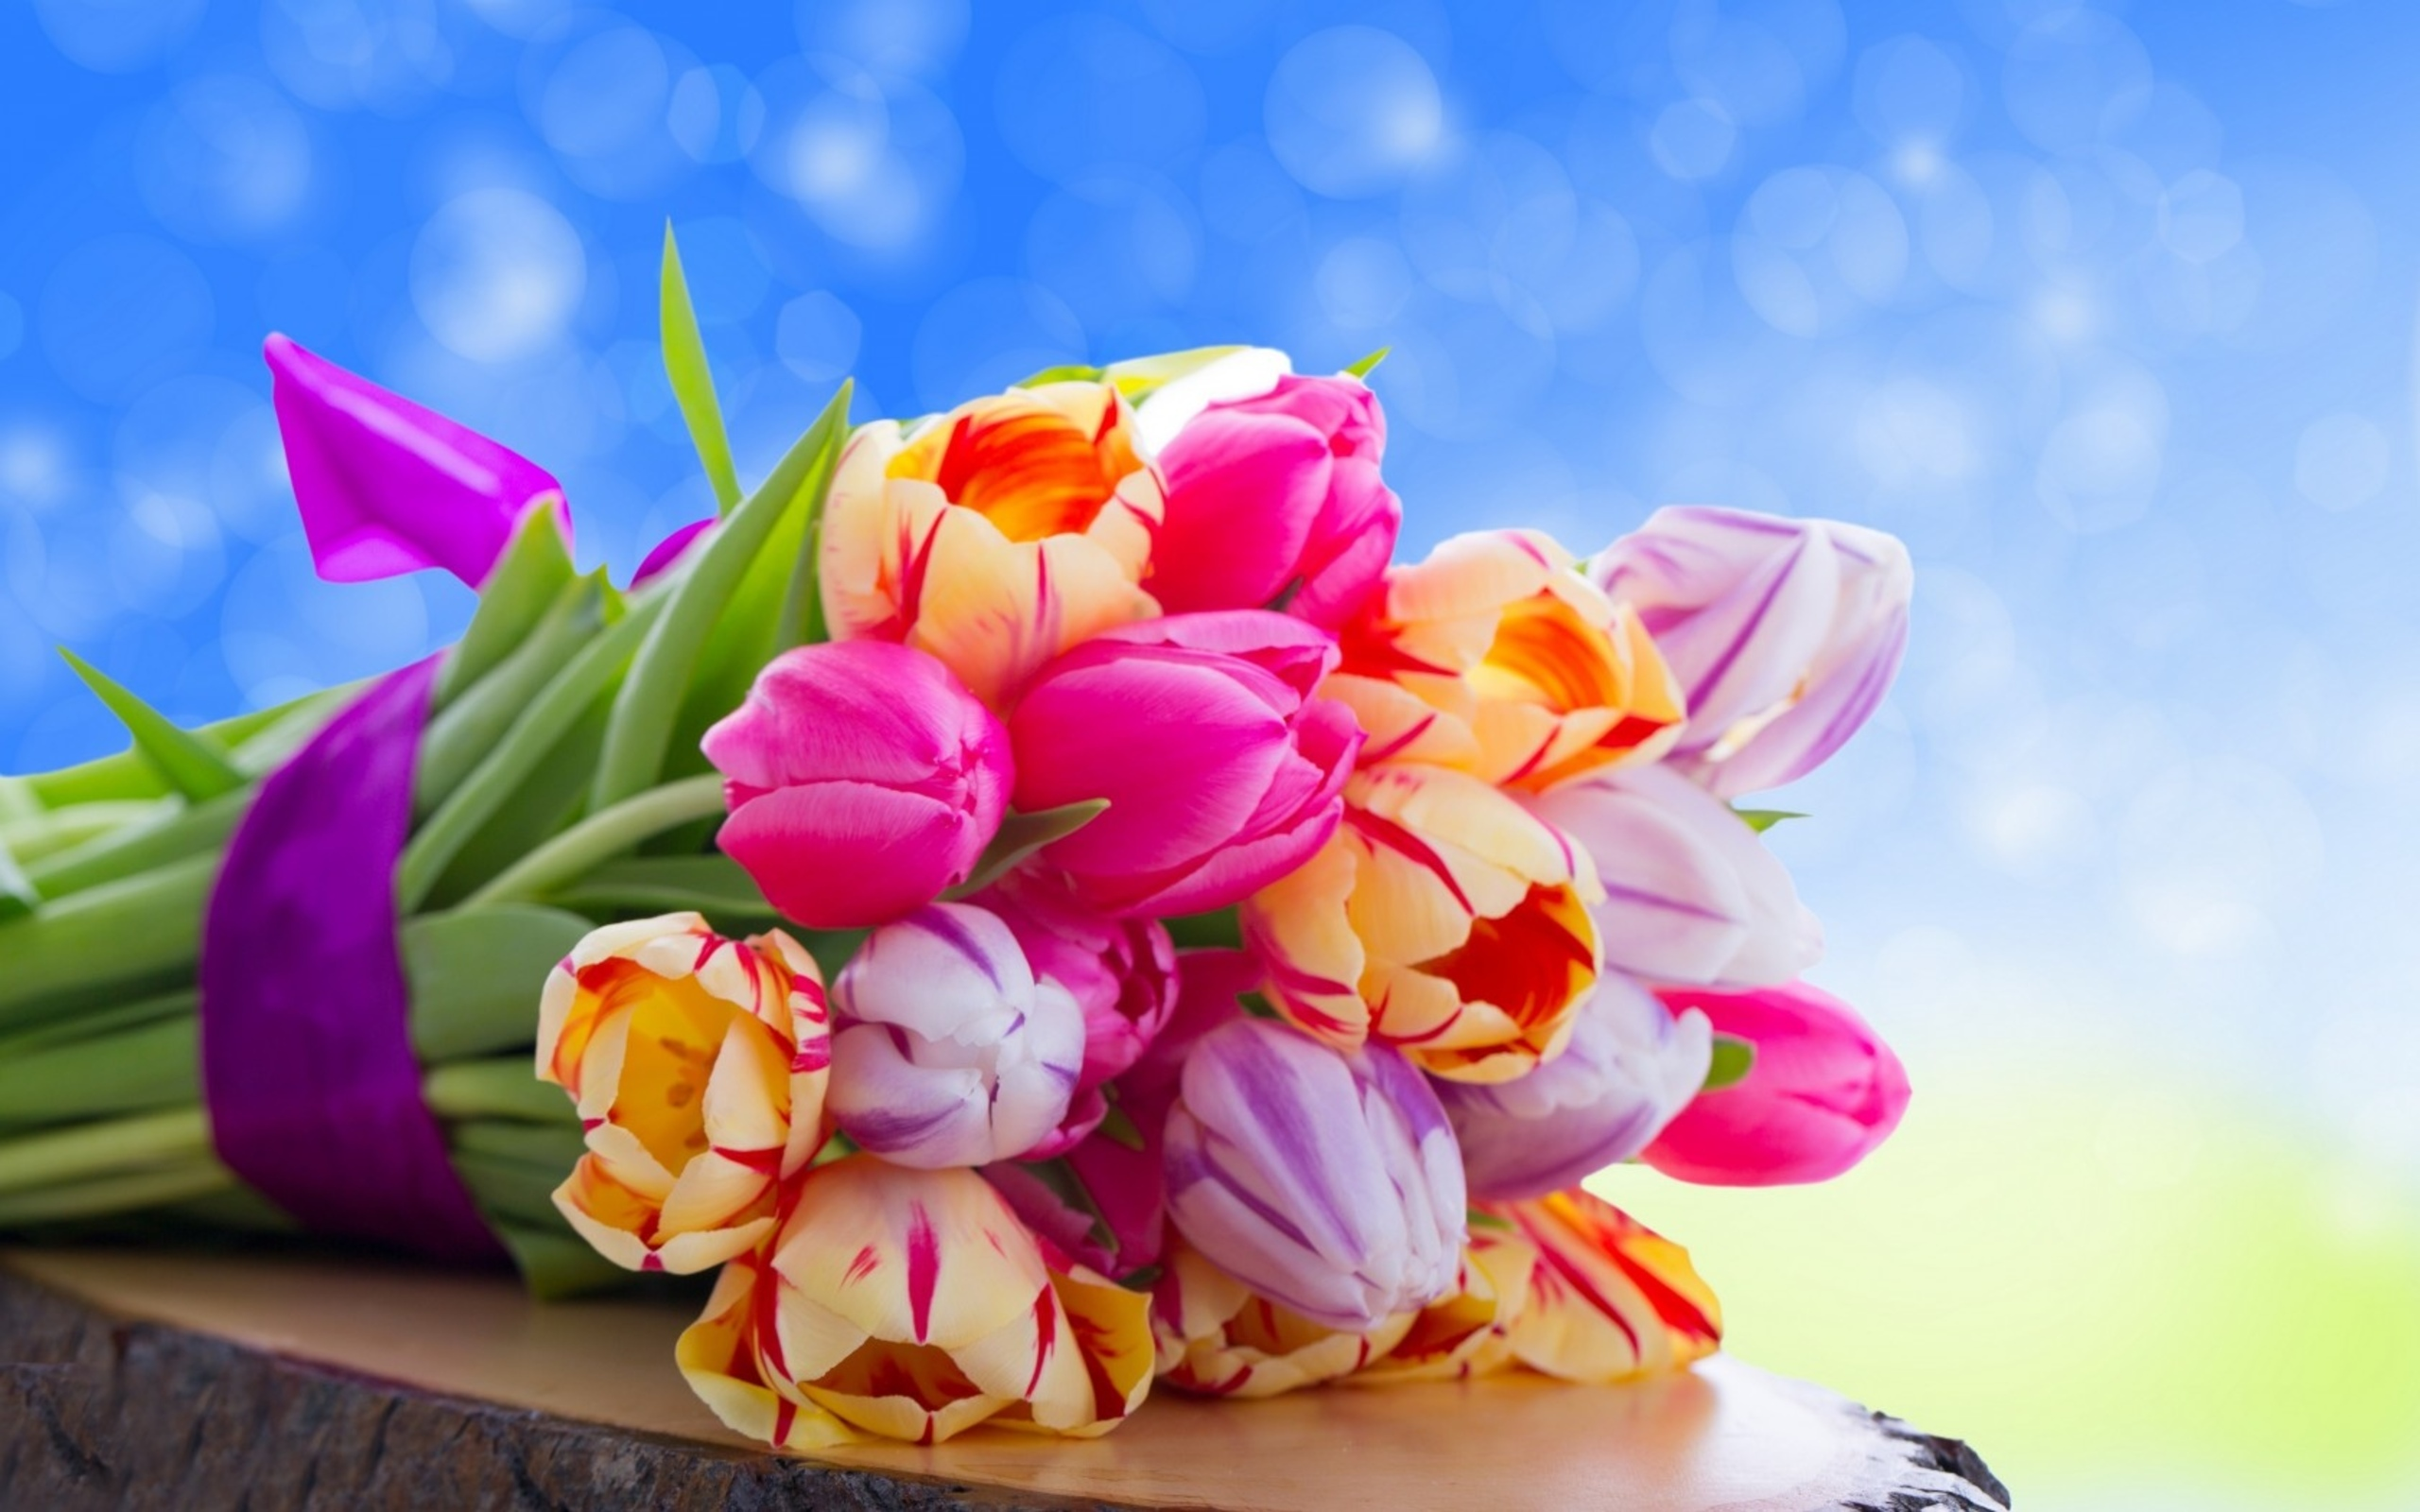 Colorful Flowers Wallpapers HD | Wallpapers, Backgrounds, Images ...